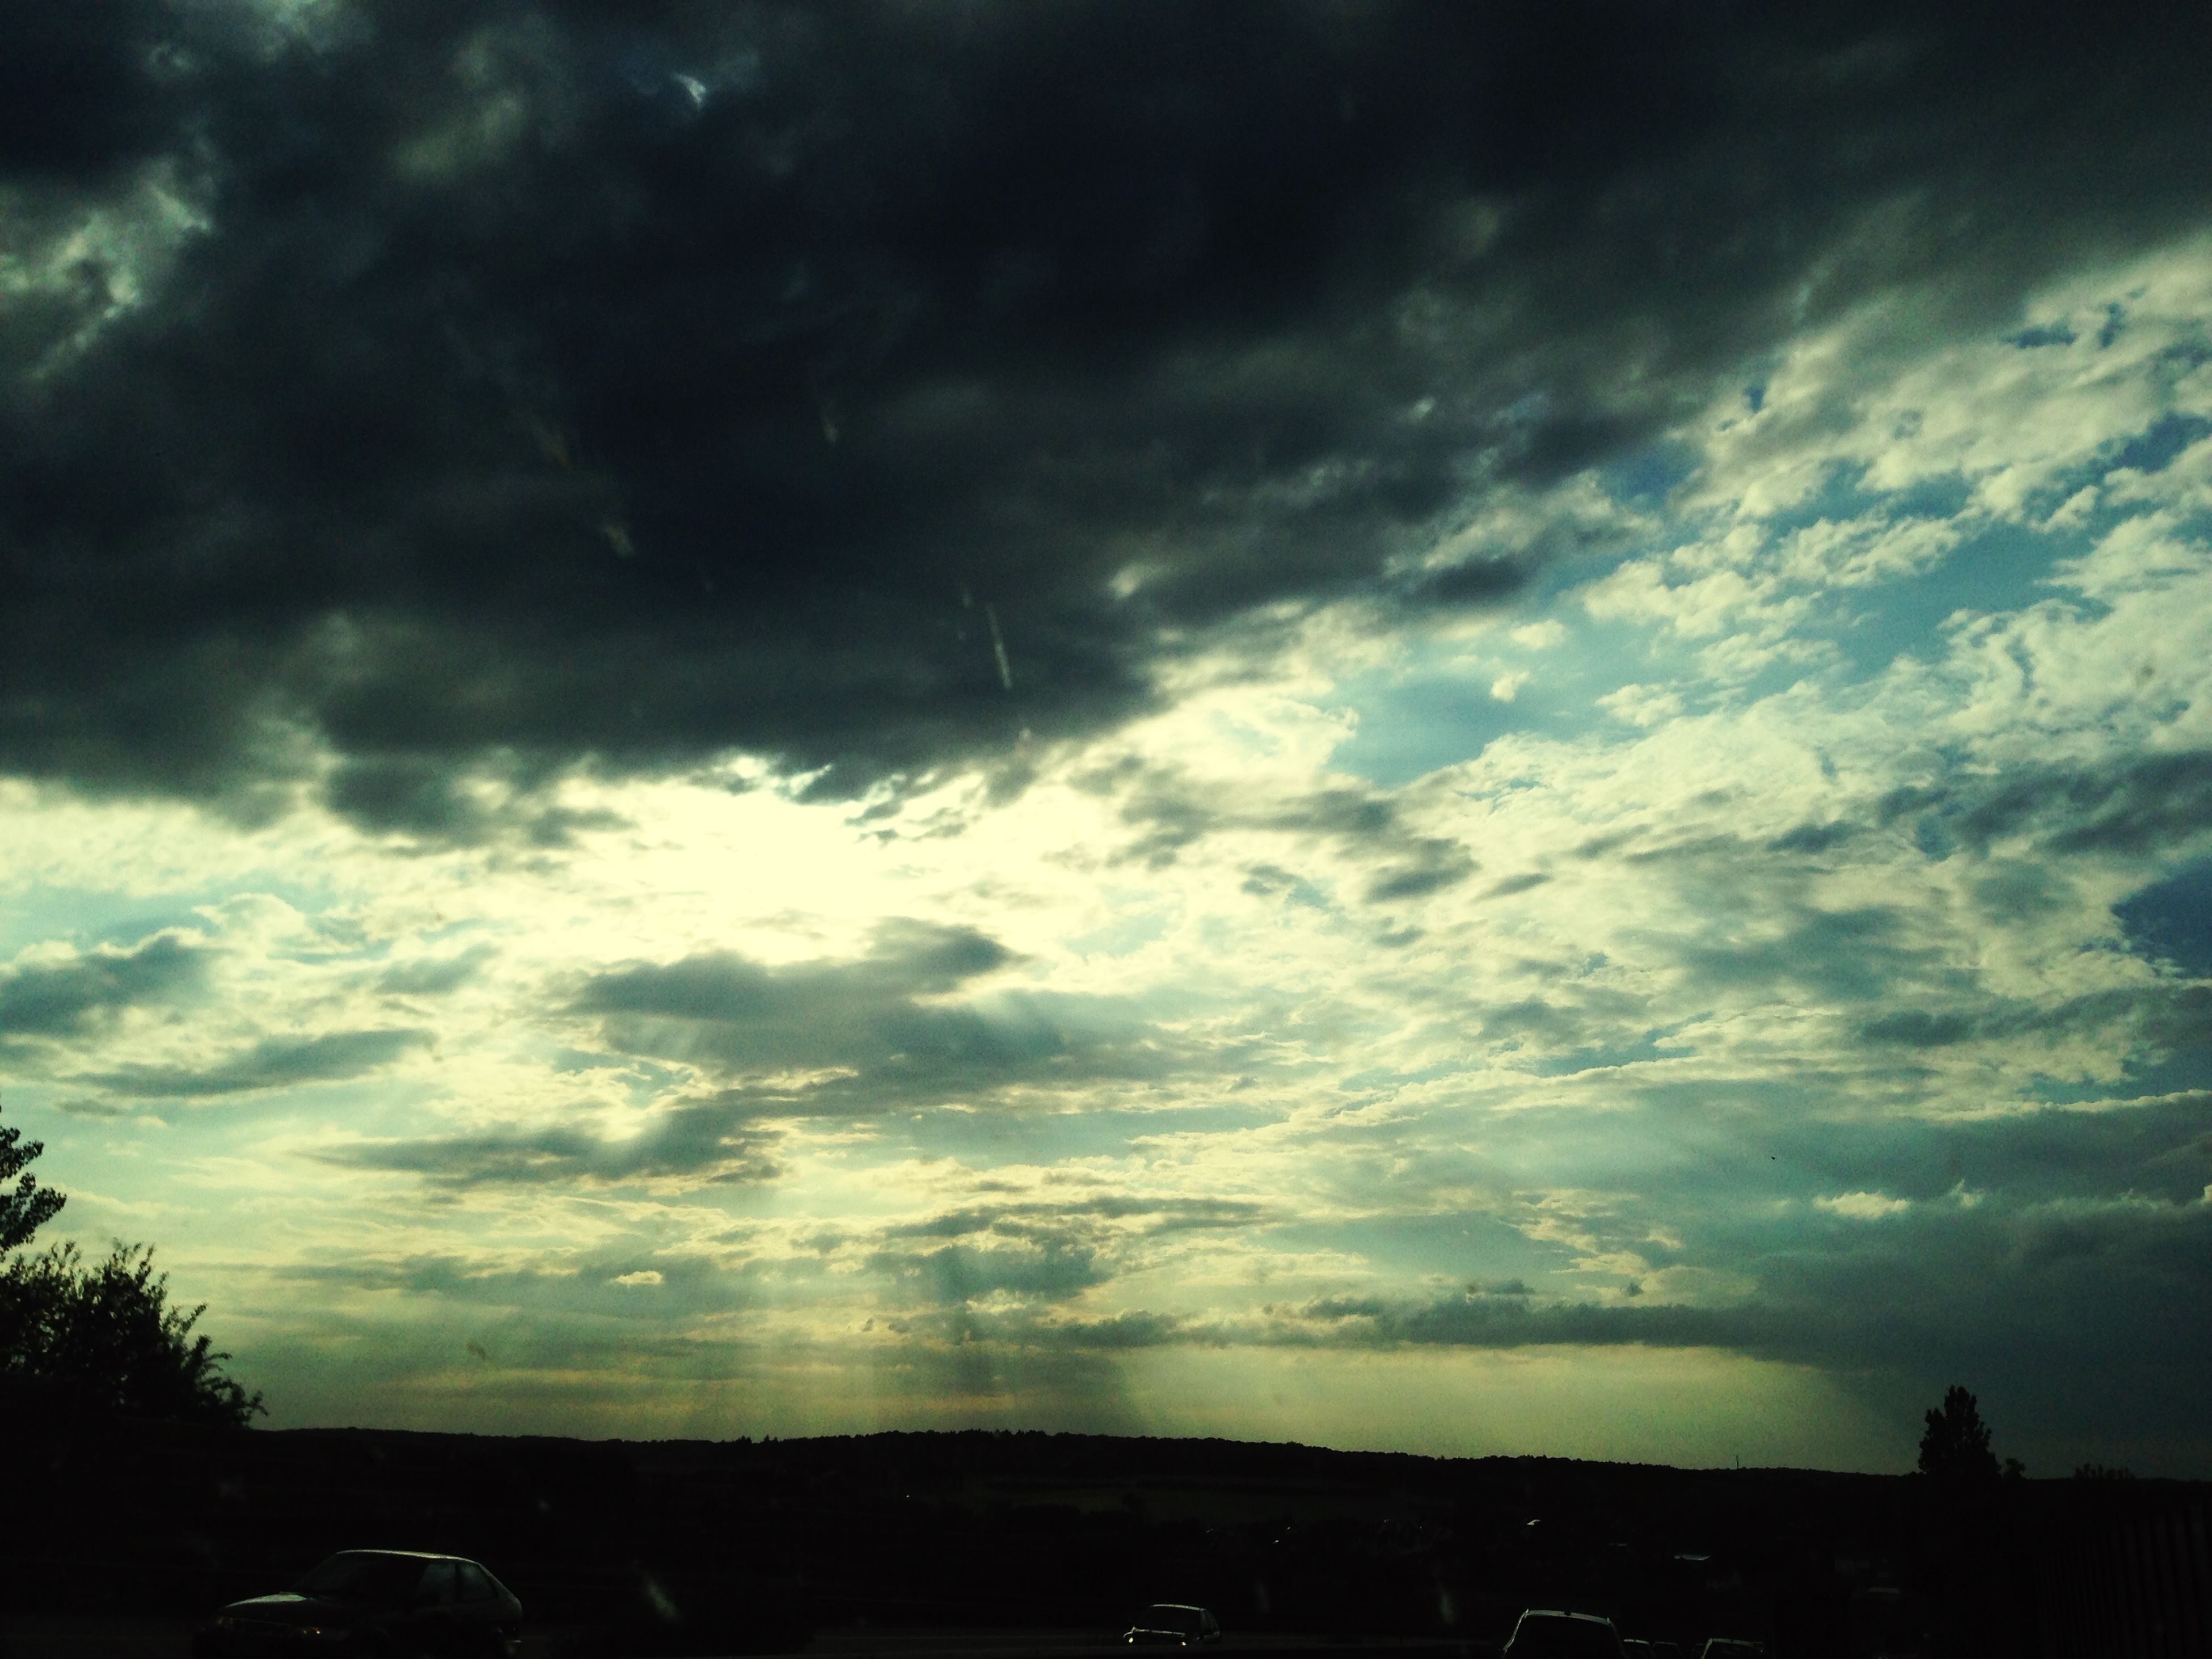 sky, cloud - sky, cloudy, silhouette, weather, overcast, sunset, beauty in nature, storm cloud, dramatic sky, scenics, cloud, tranquility, low angle view, tranquil scene, nature, cloudscape, dusk, tree, atmospheric mood